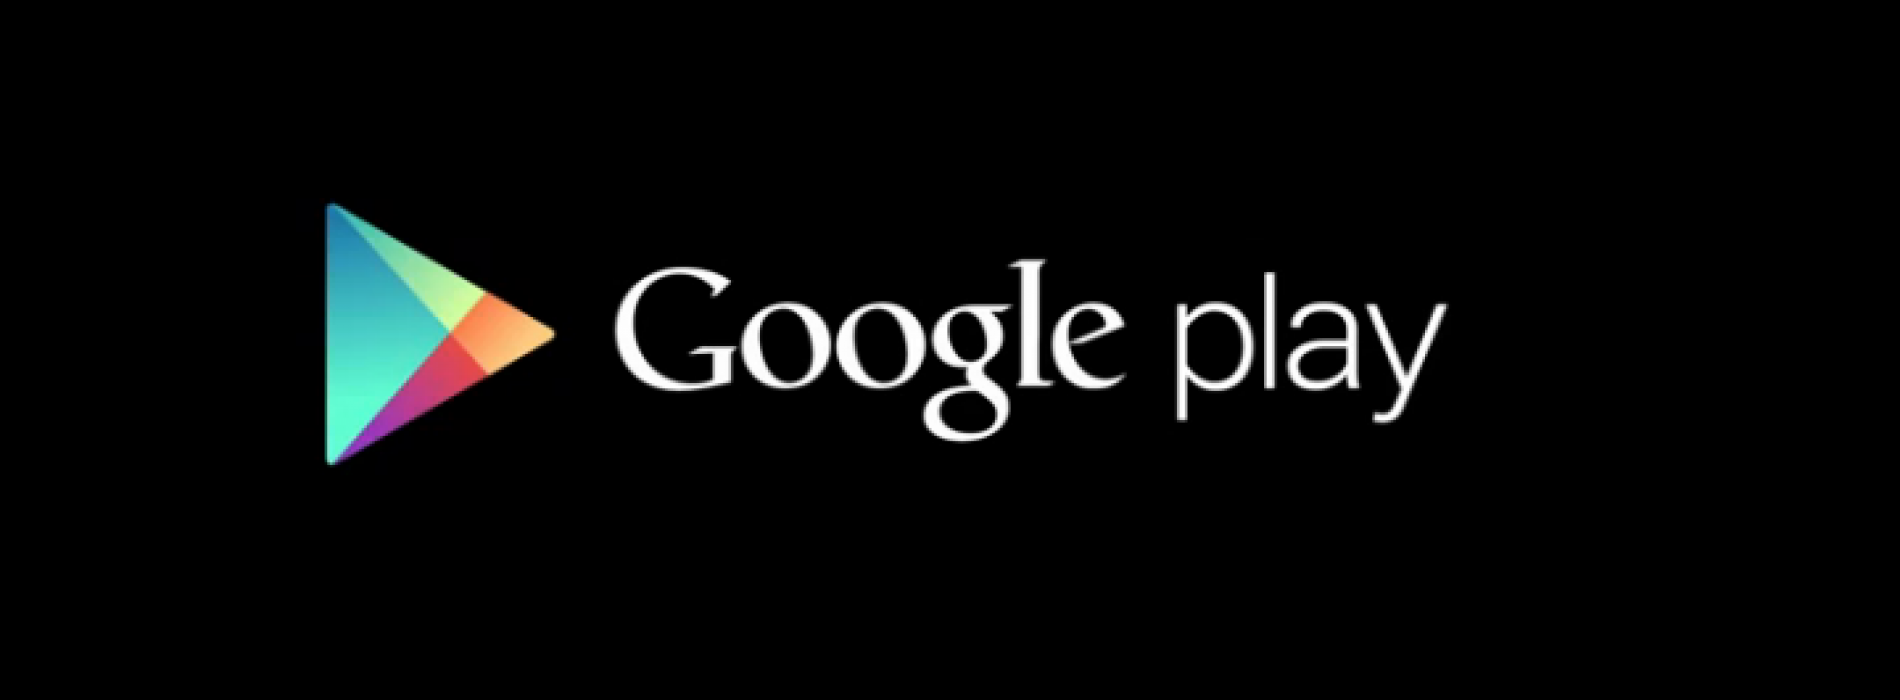 Google Play reviews now tied to Google+ profiles